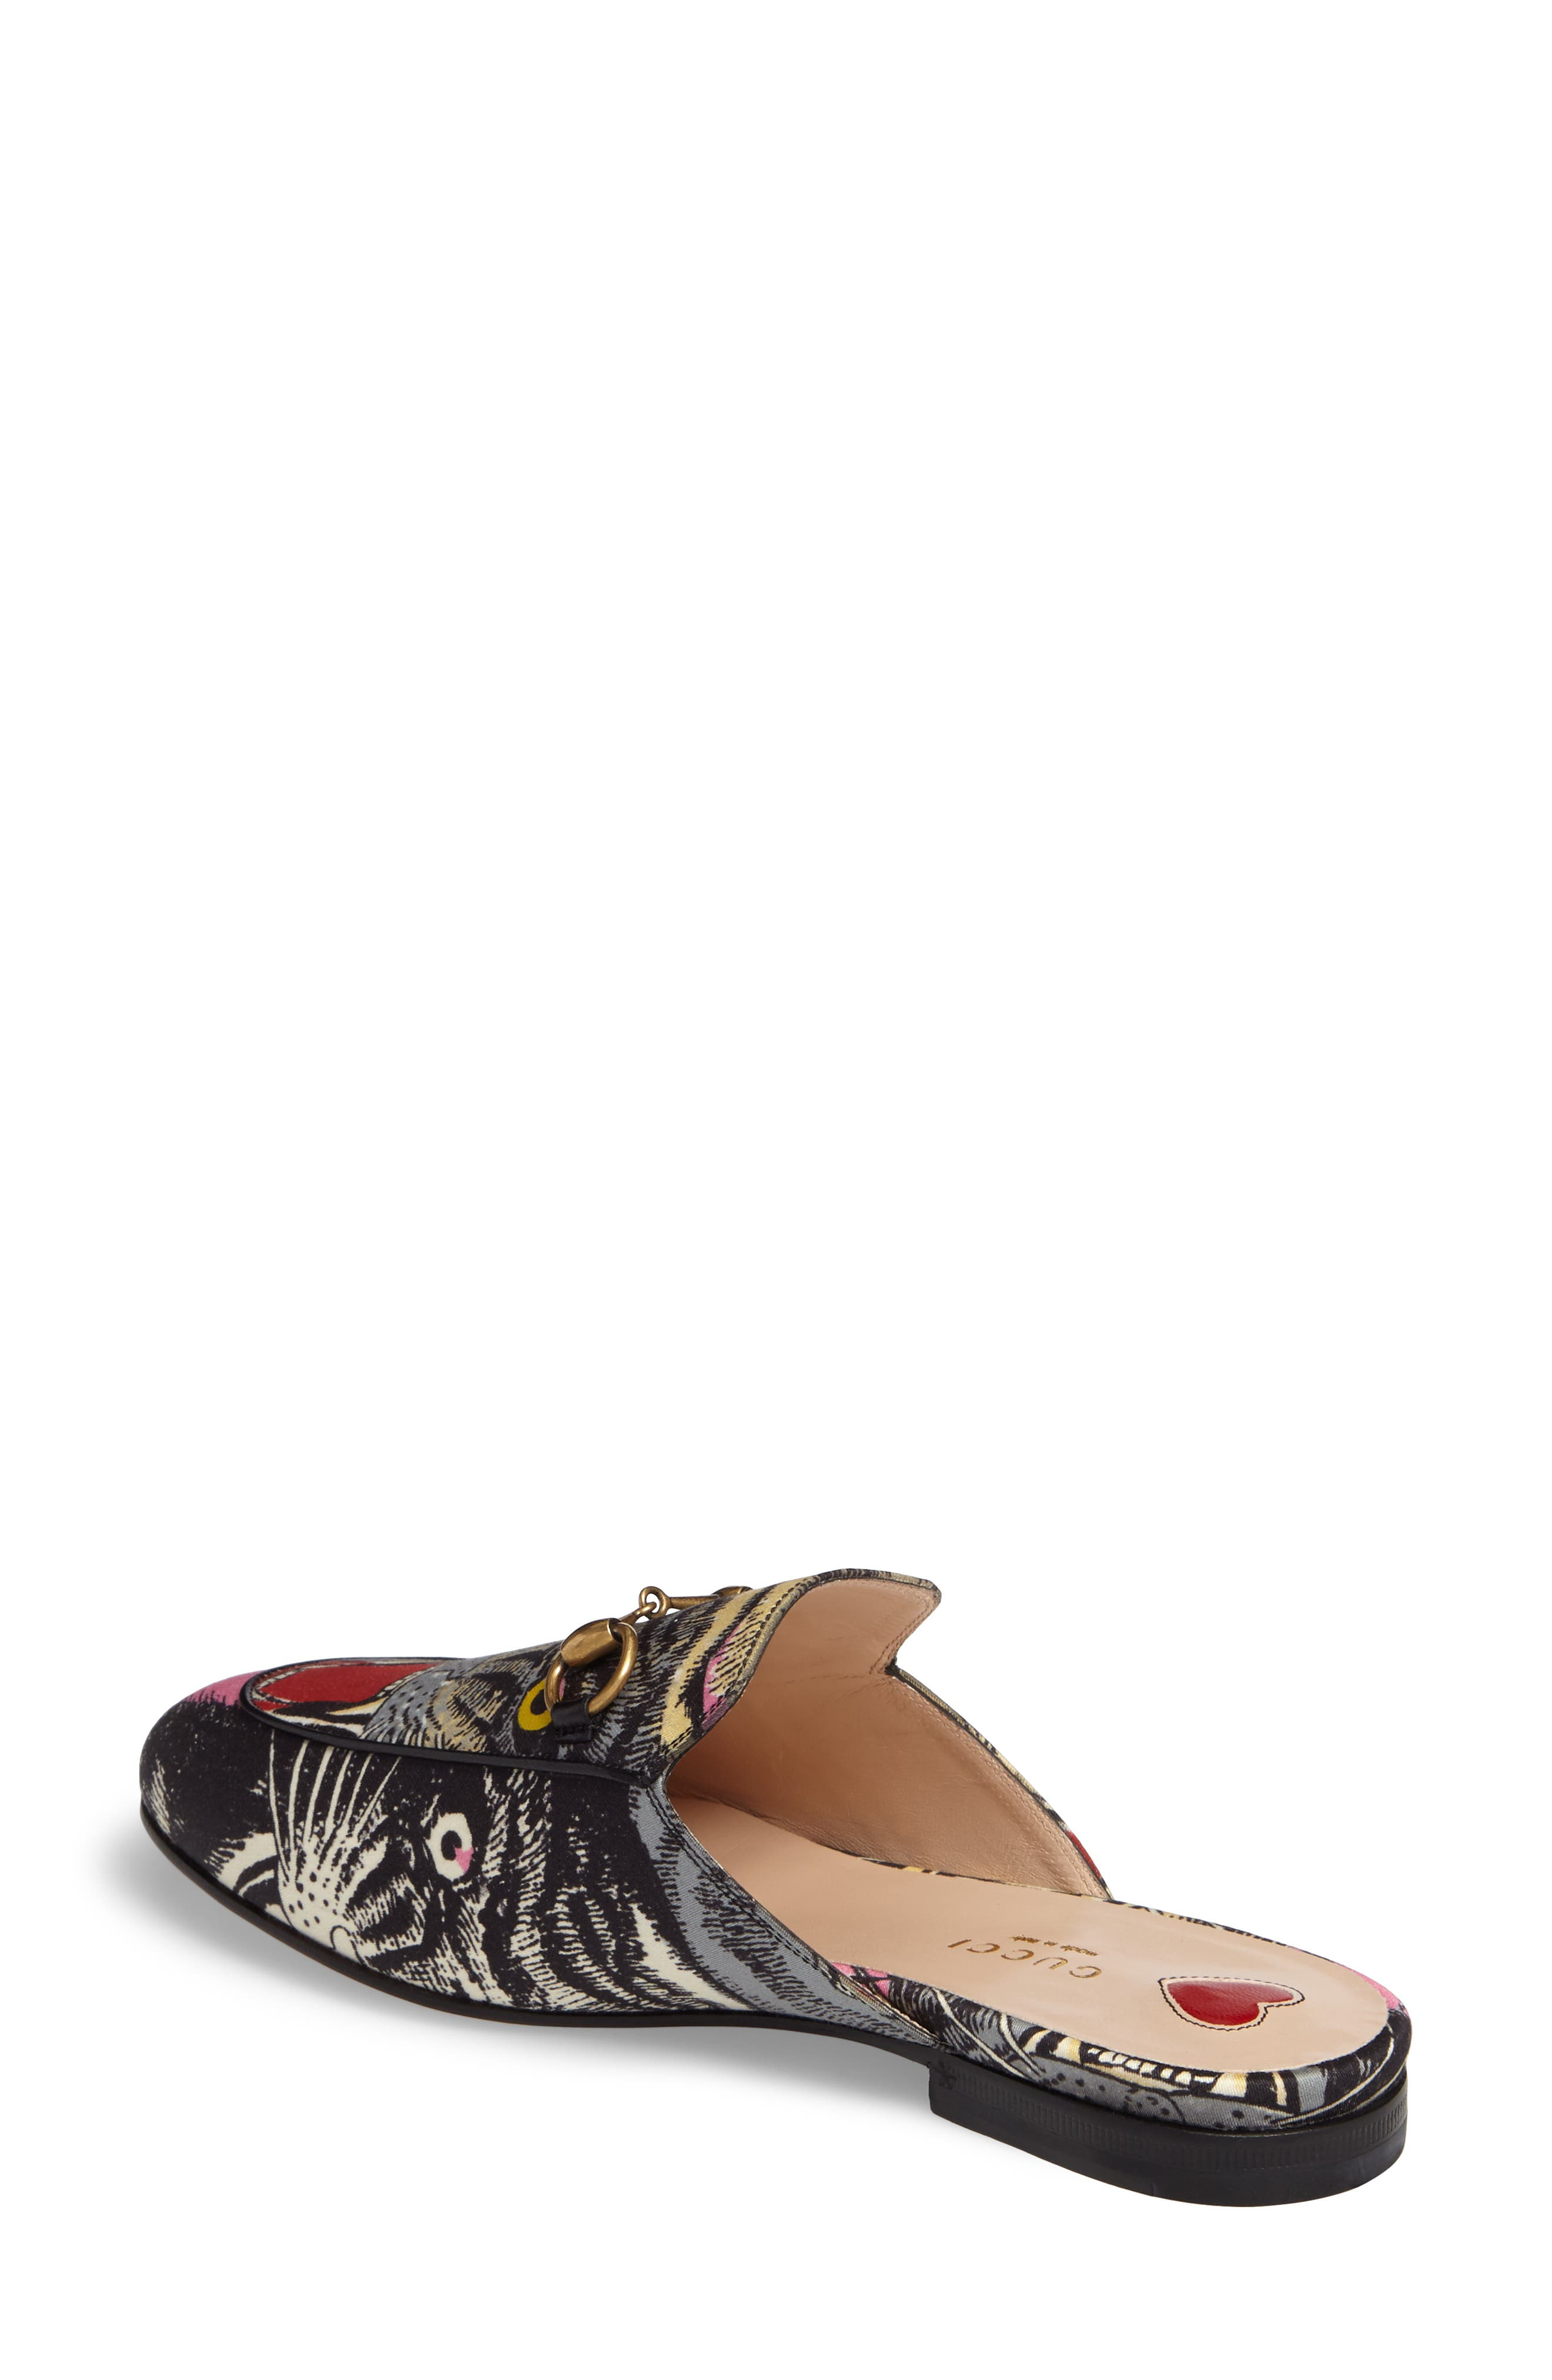 Princetown Angry Cat Mule Loafer,                             Alternate thumbnail 2, color,                             002